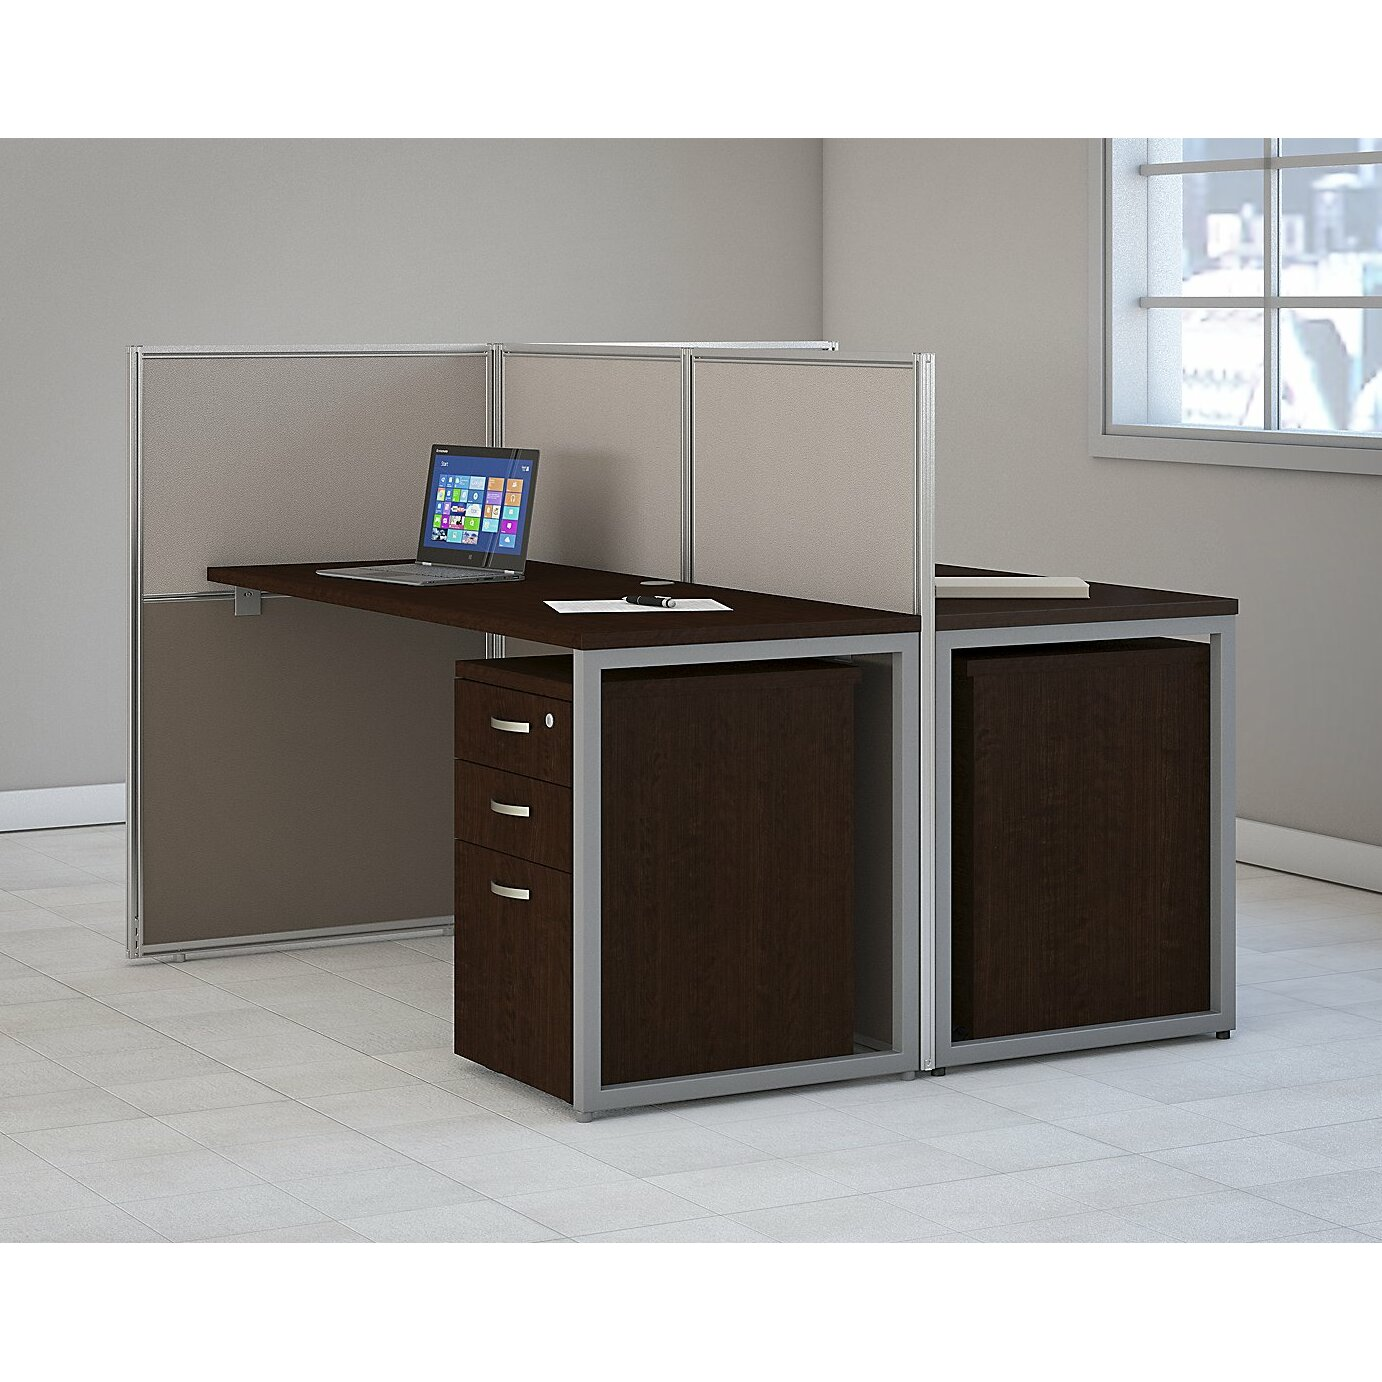 Bush Business Furniture Easy Office 4 Piece Standard Desk Office Suite Reviews Wayfair